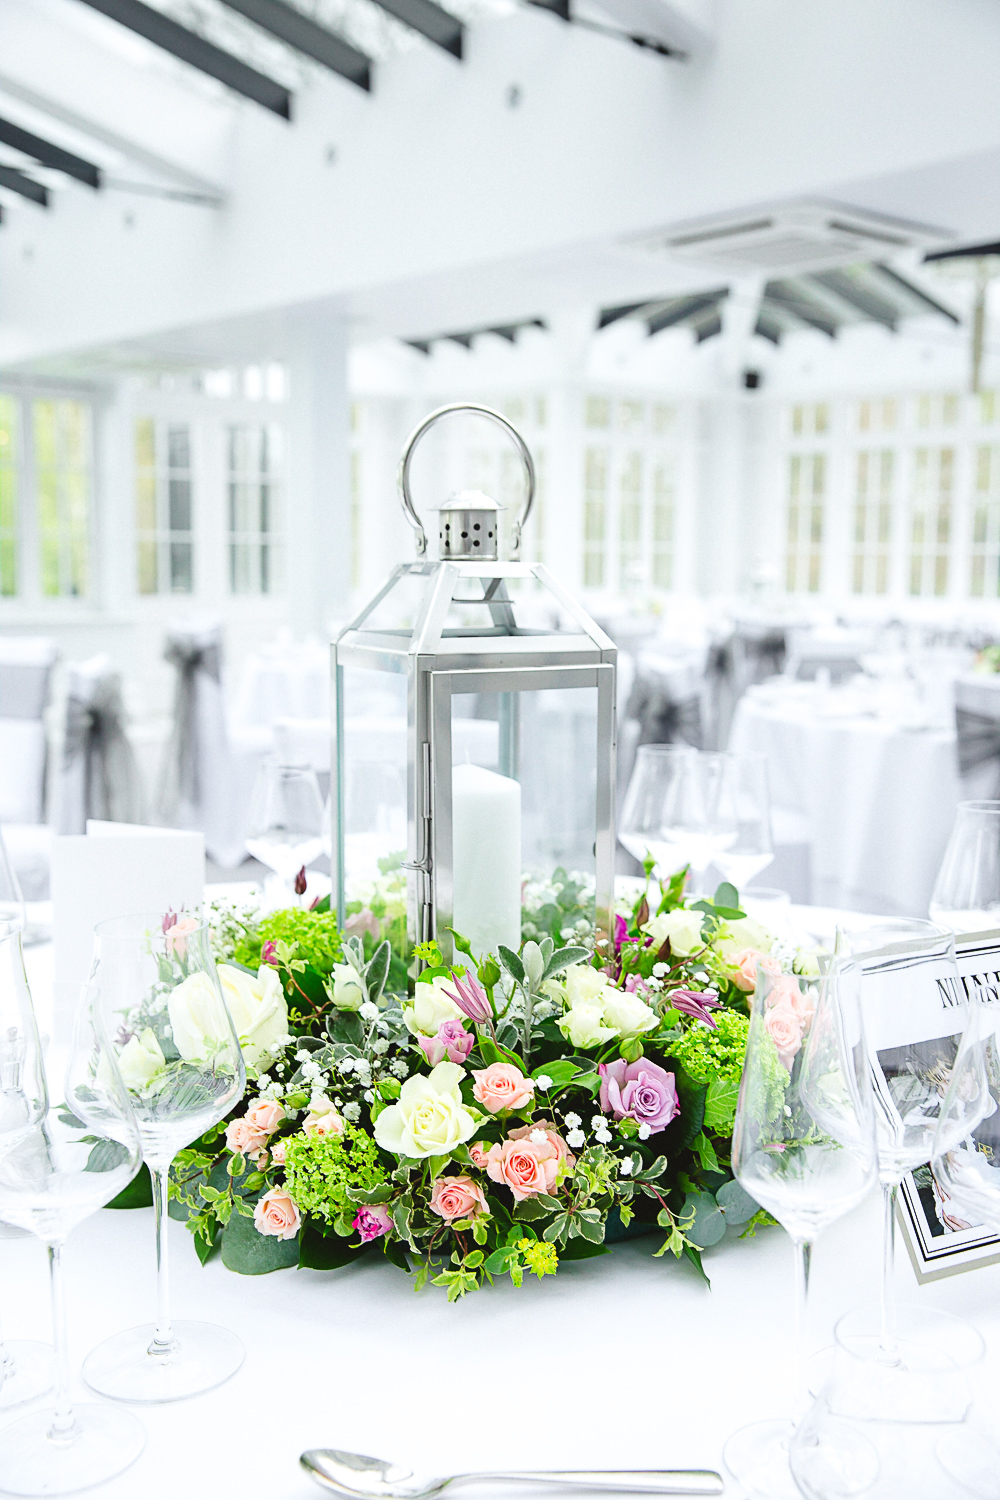 Table Flowers at Swynford Manor Wedding